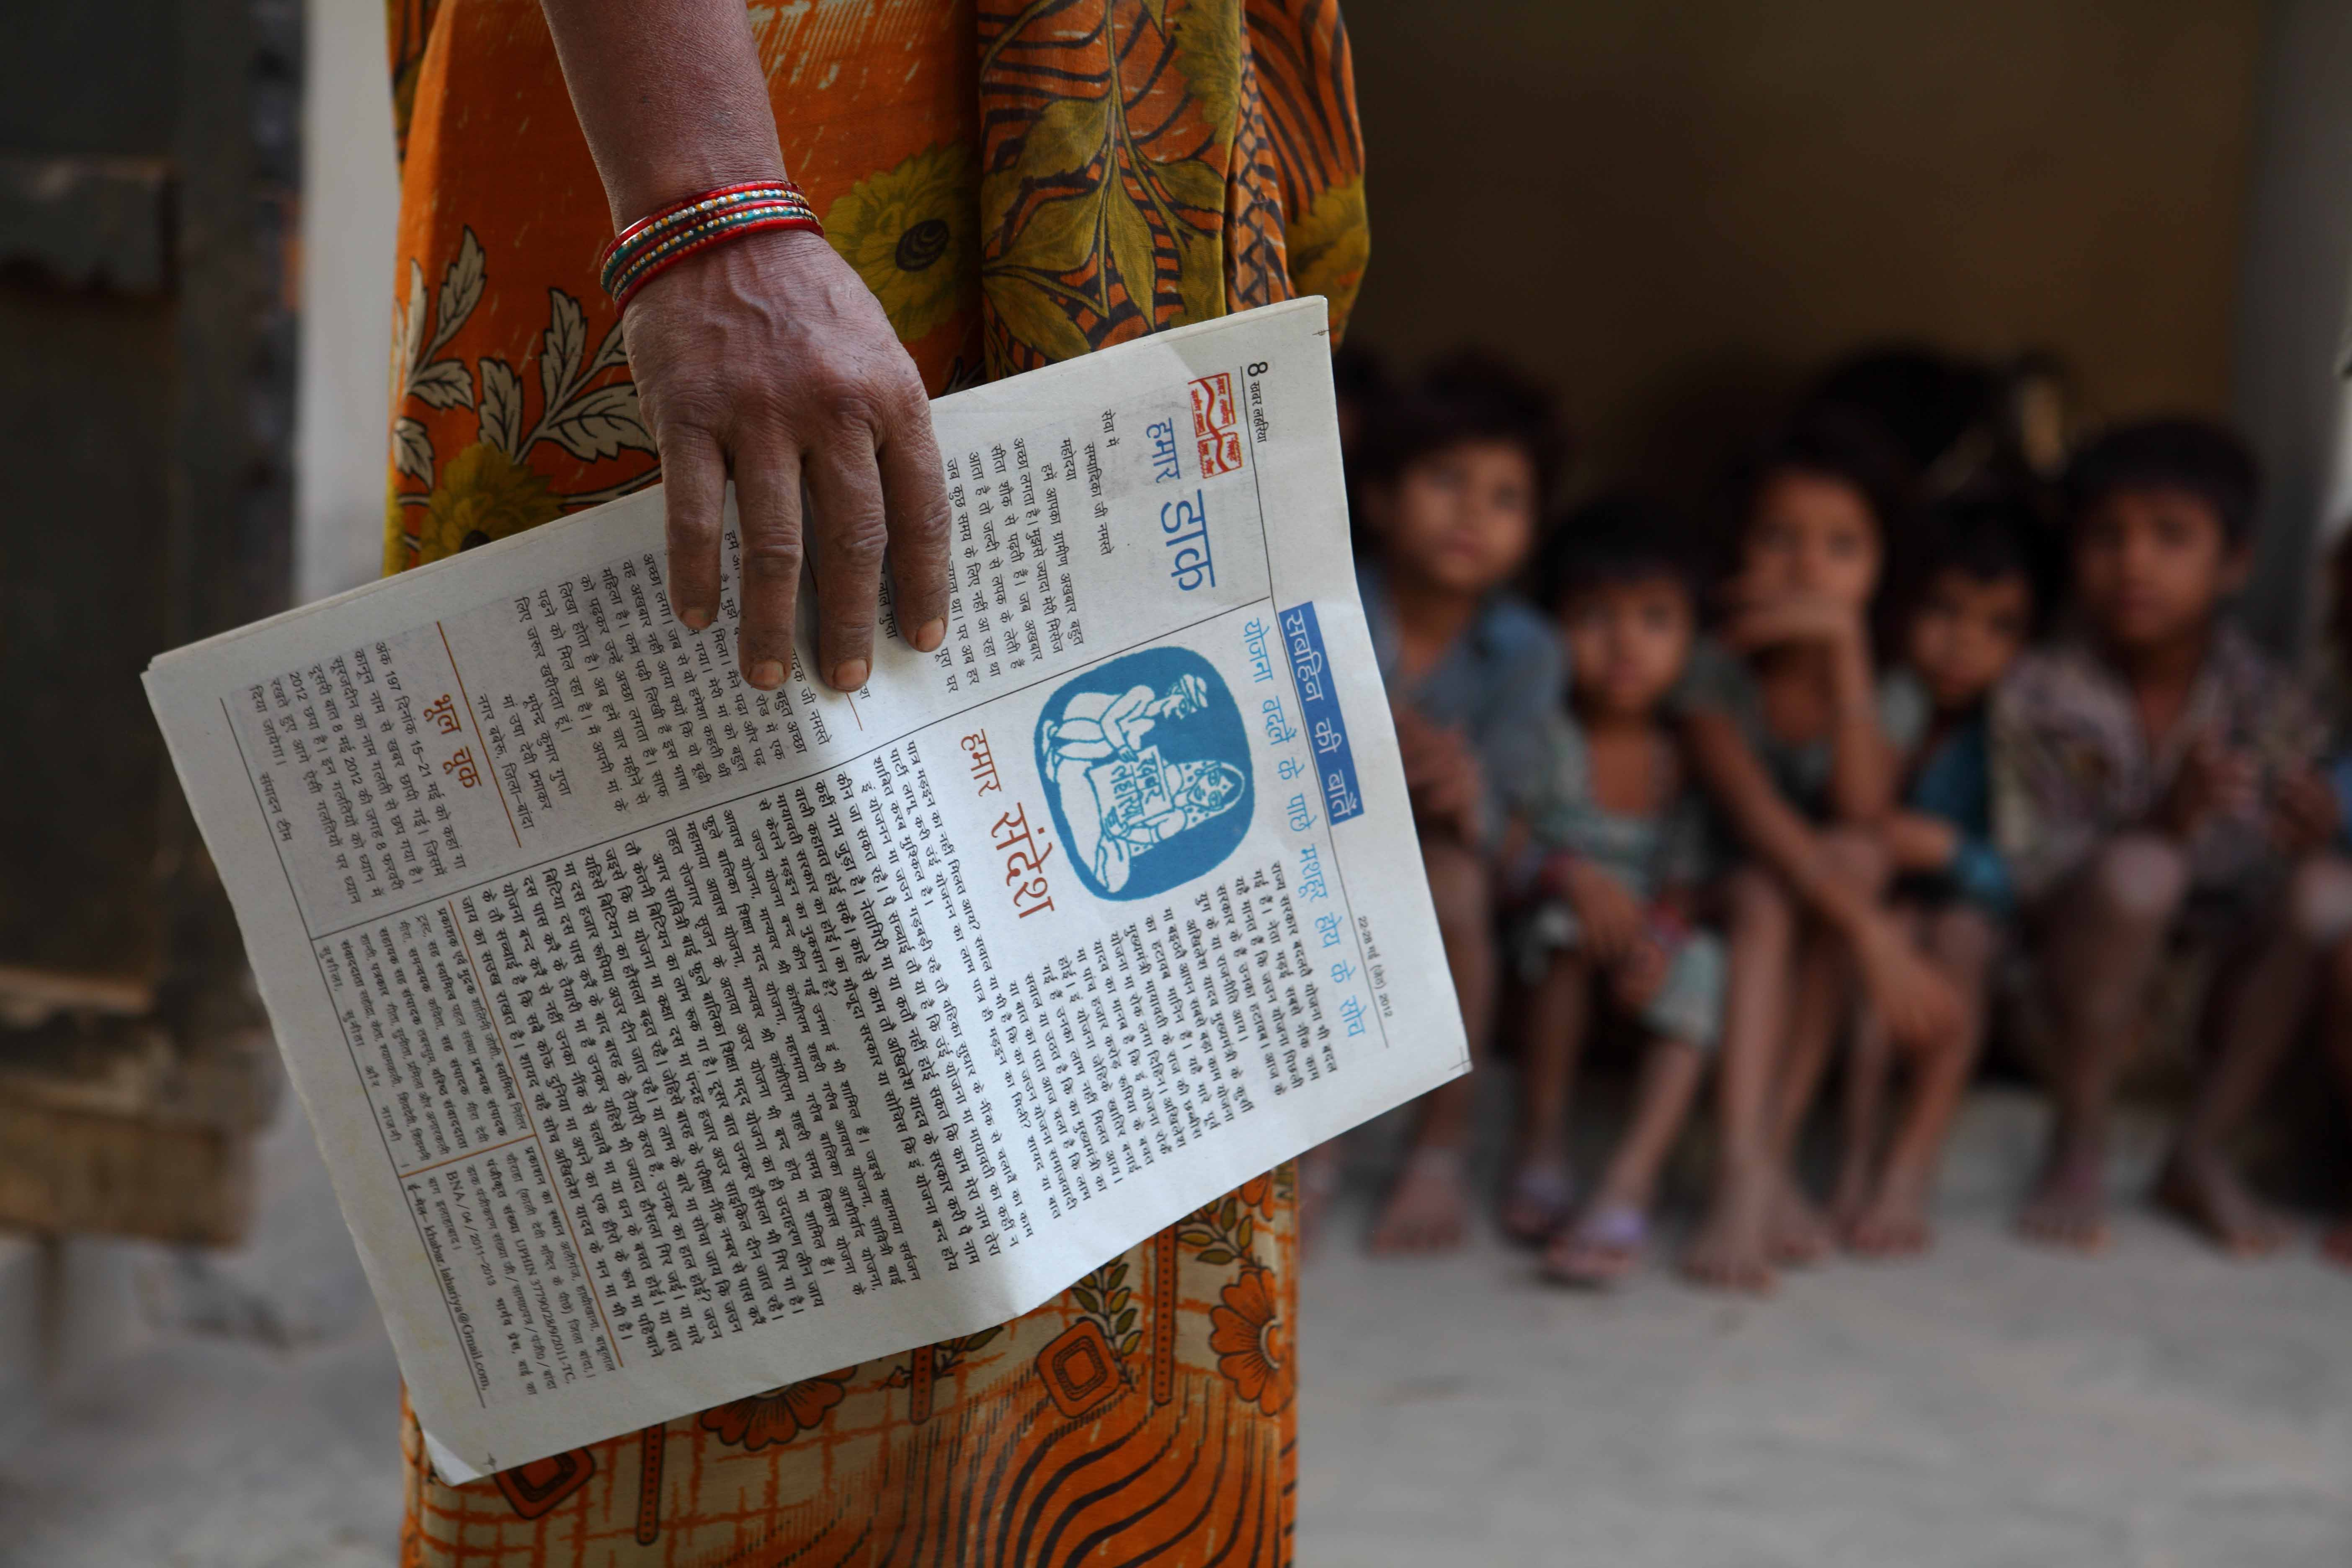 Khabar Lahariya is sold across 600 villages of Uttar Pradesh and Bihar